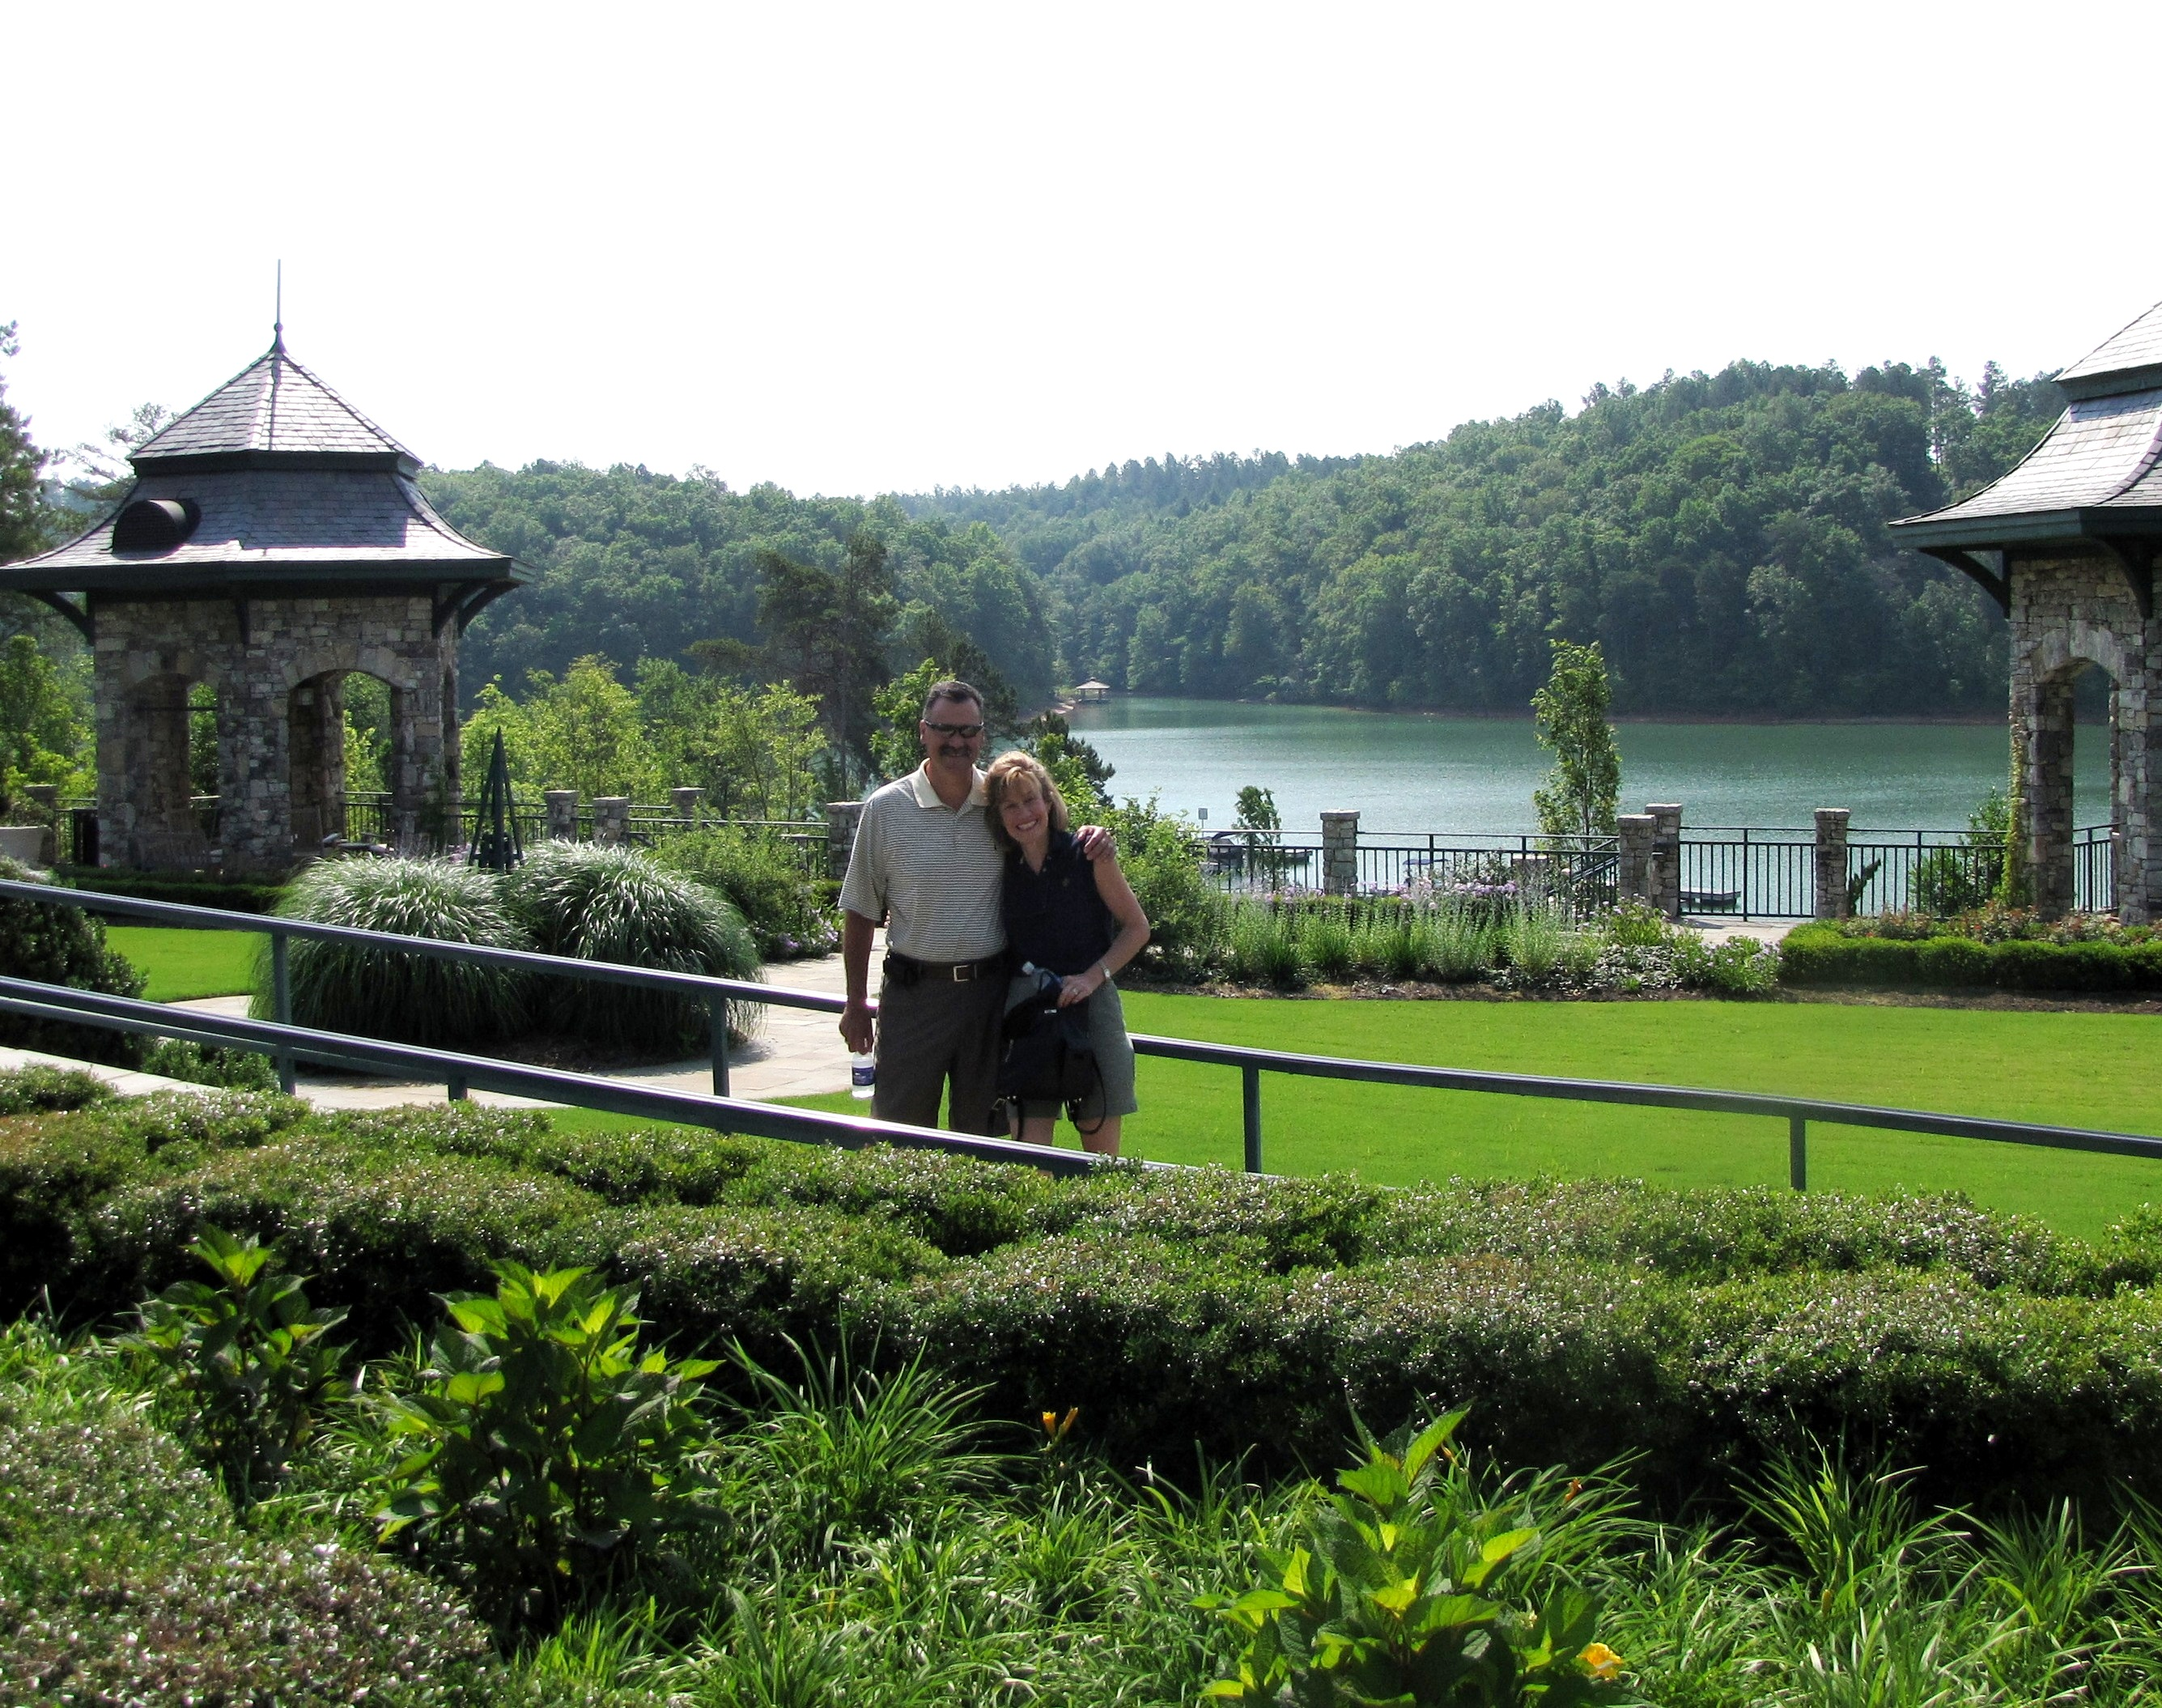 Dabo swinney house life on keowee the official blog of the reserve at